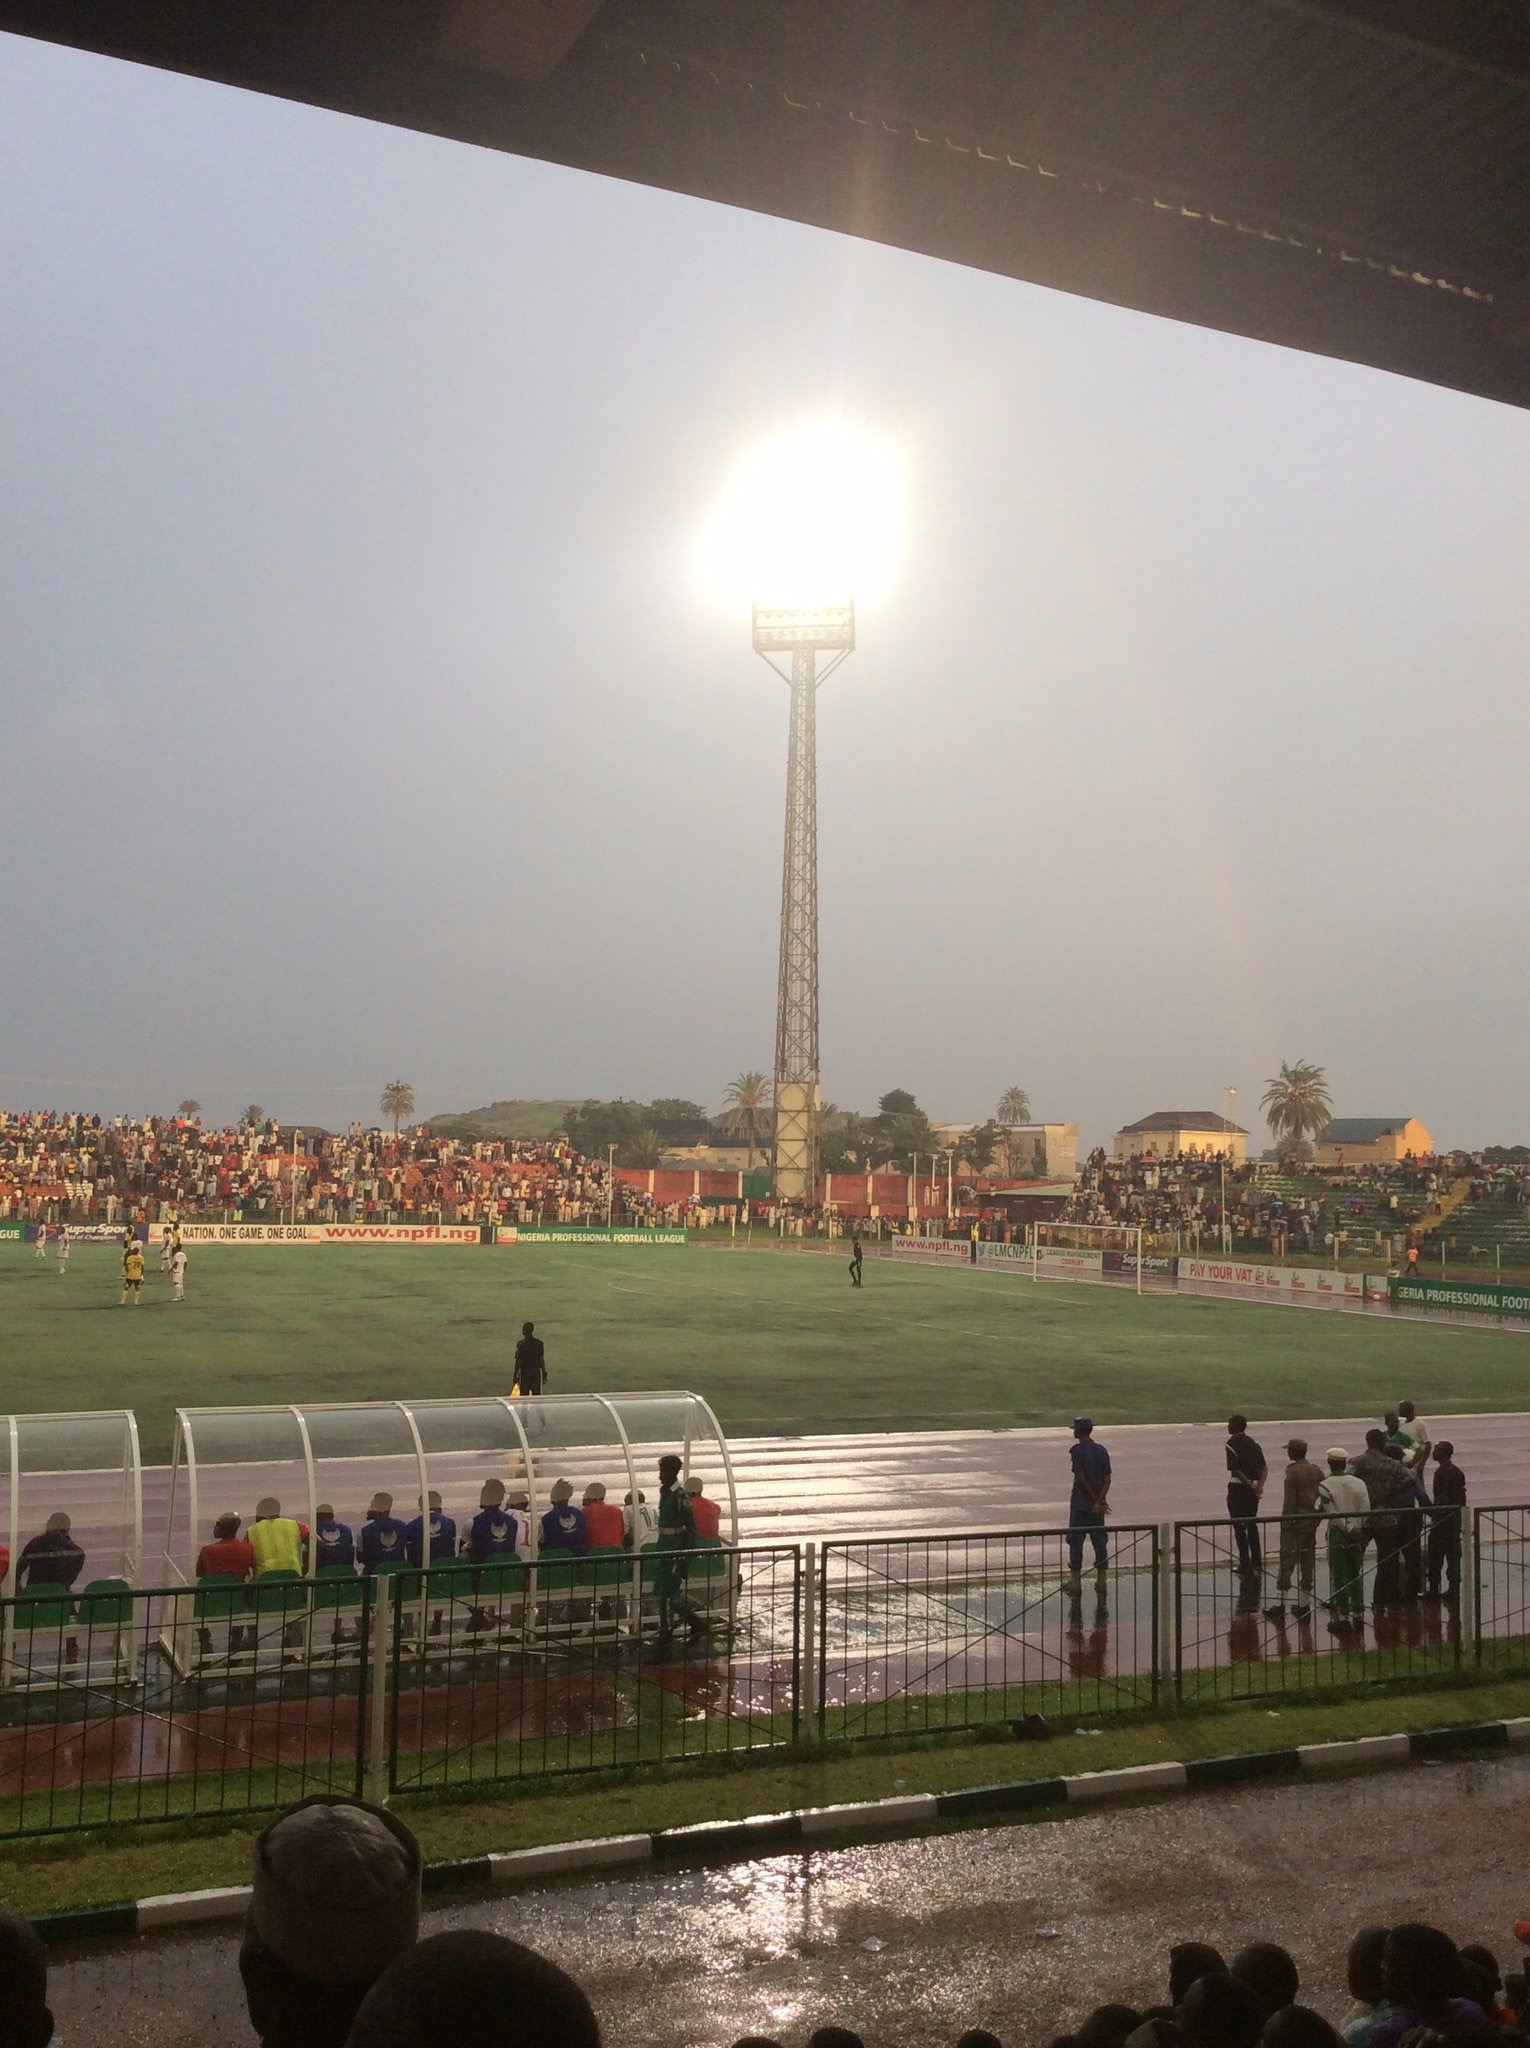 NPFL: Three Fans Arrested For Assaulting Match Officials In Bauchi